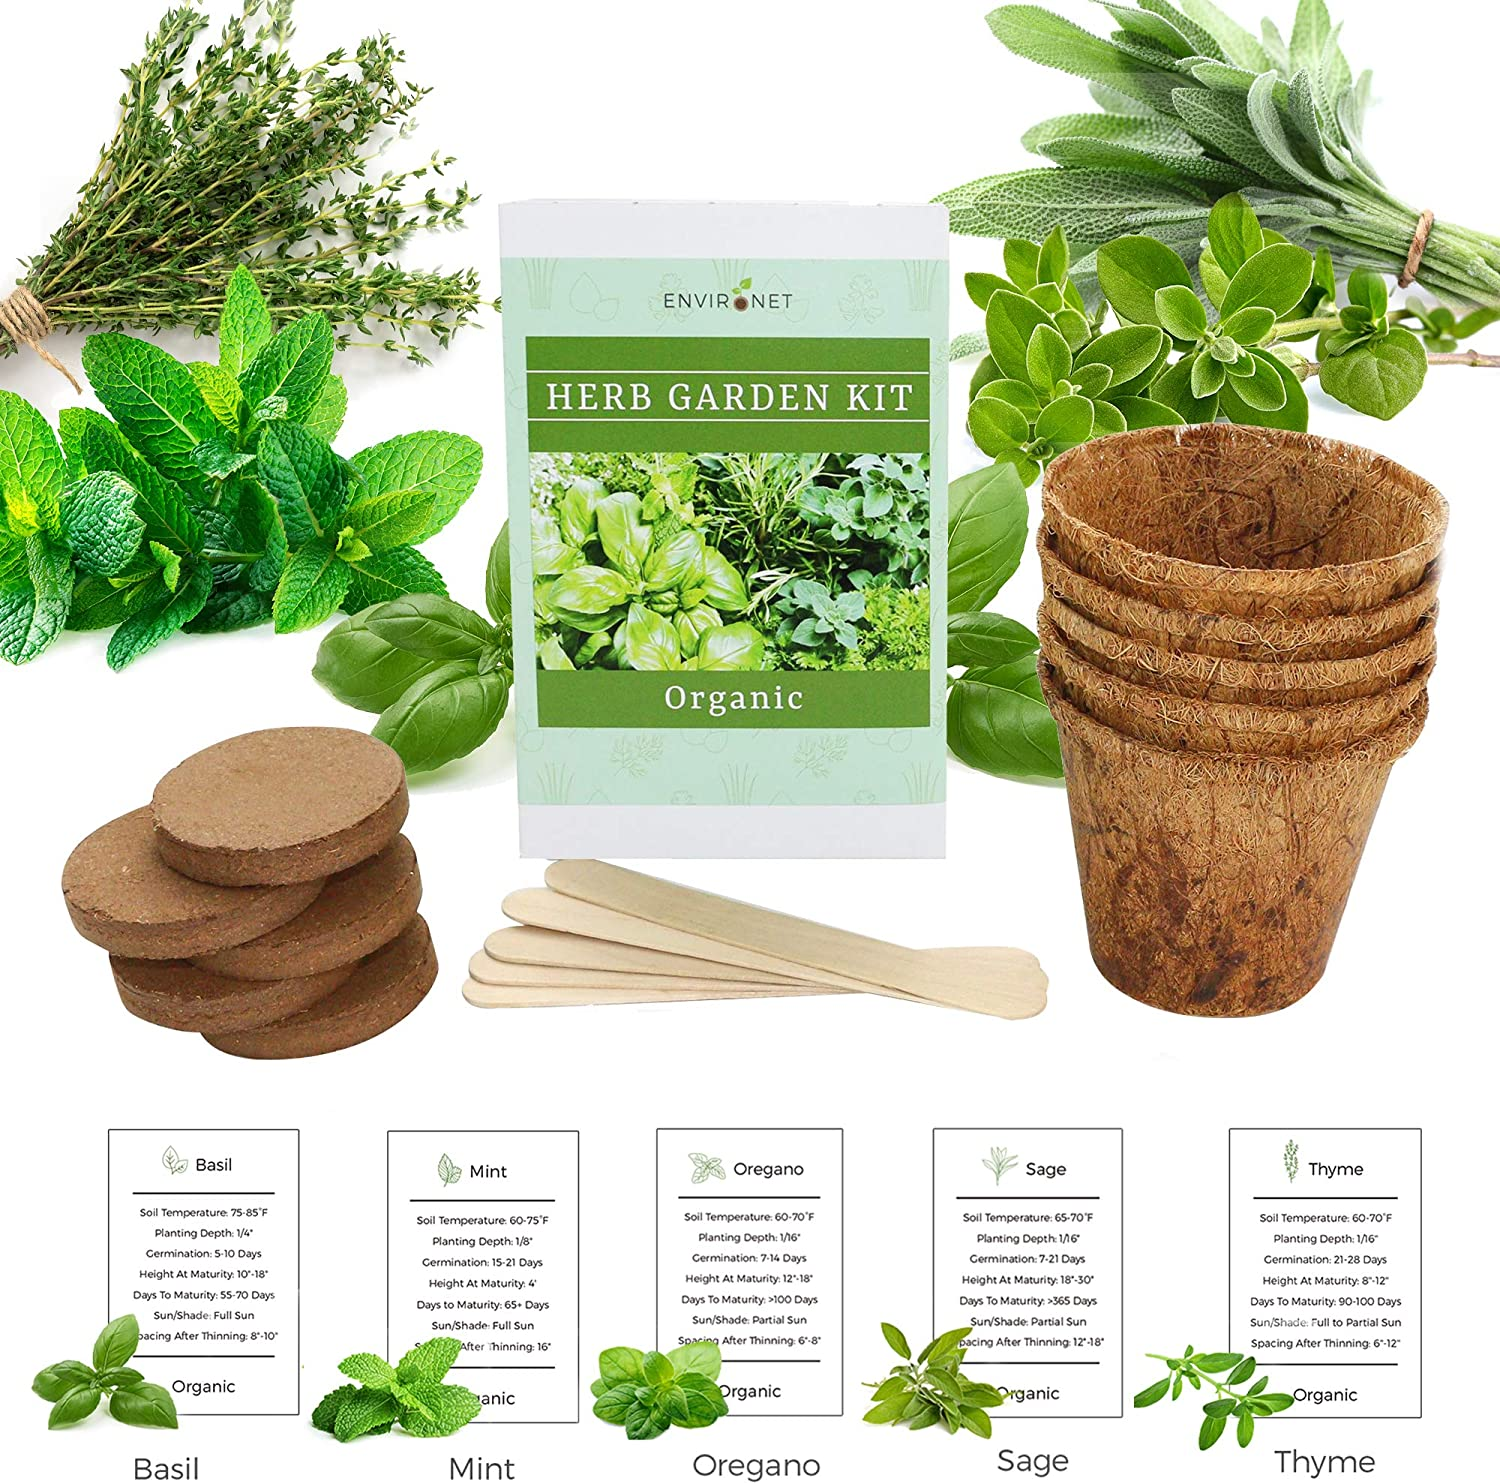 Environet Herb Garden Kit. Organic Seed Starter Kit Indoor. Grow 5 Different Herbs - Basil, Mint, Oregano, Sage and Thyme from Seeds at Home. Gardening and Home Decoration Gifts